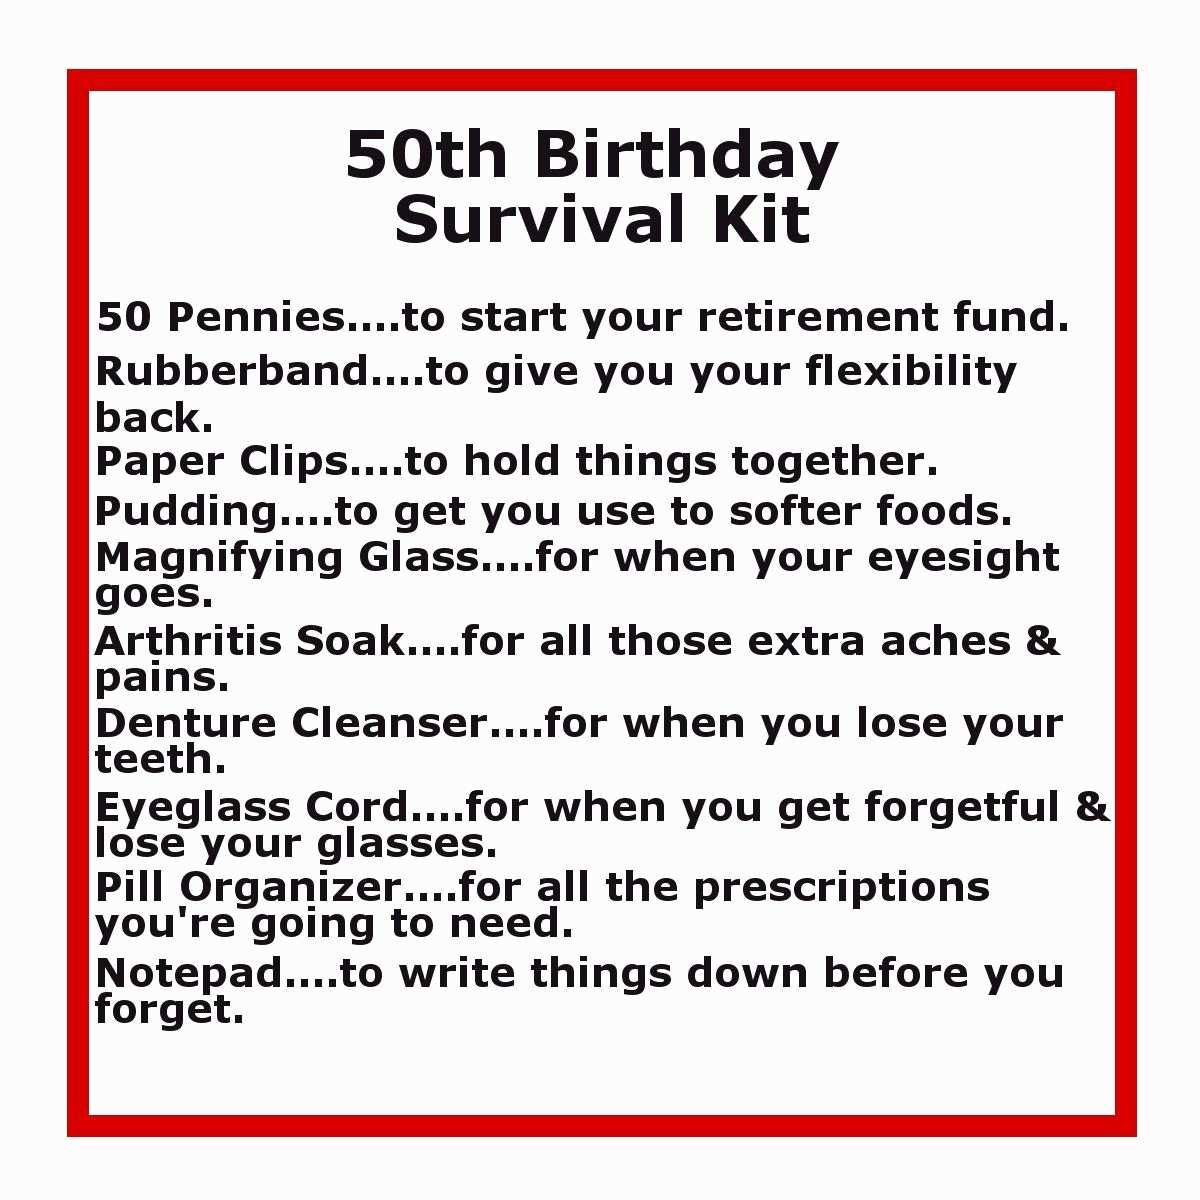 50th birthday picture quotes ; funny-40th-birthday-quotes-beautiful-50th-birthday-survival-kit-of-funny-40th-birthday-quotes